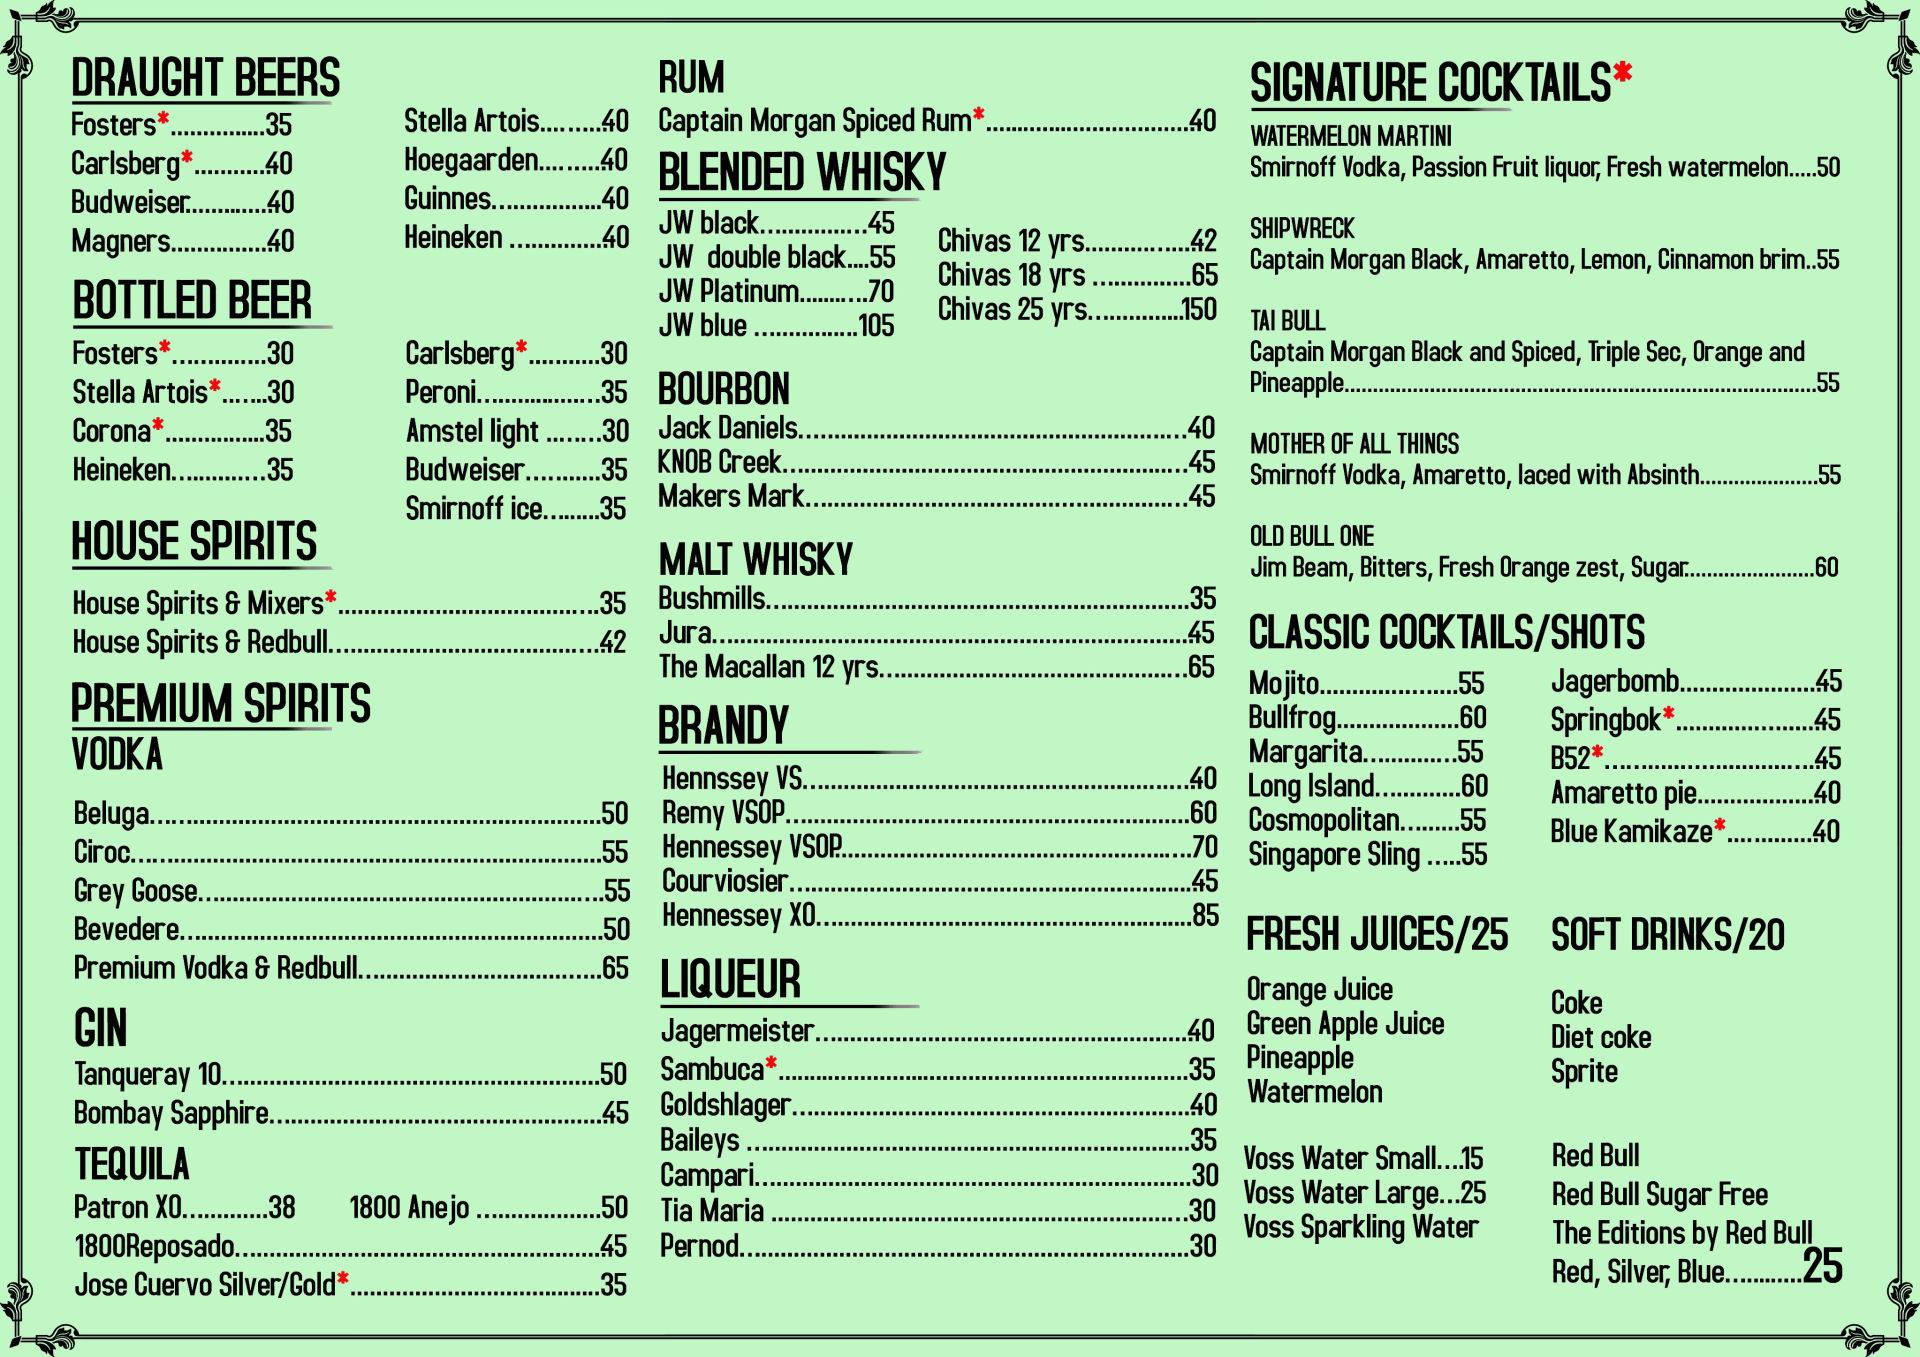 Menu of the The Old Bull Pub